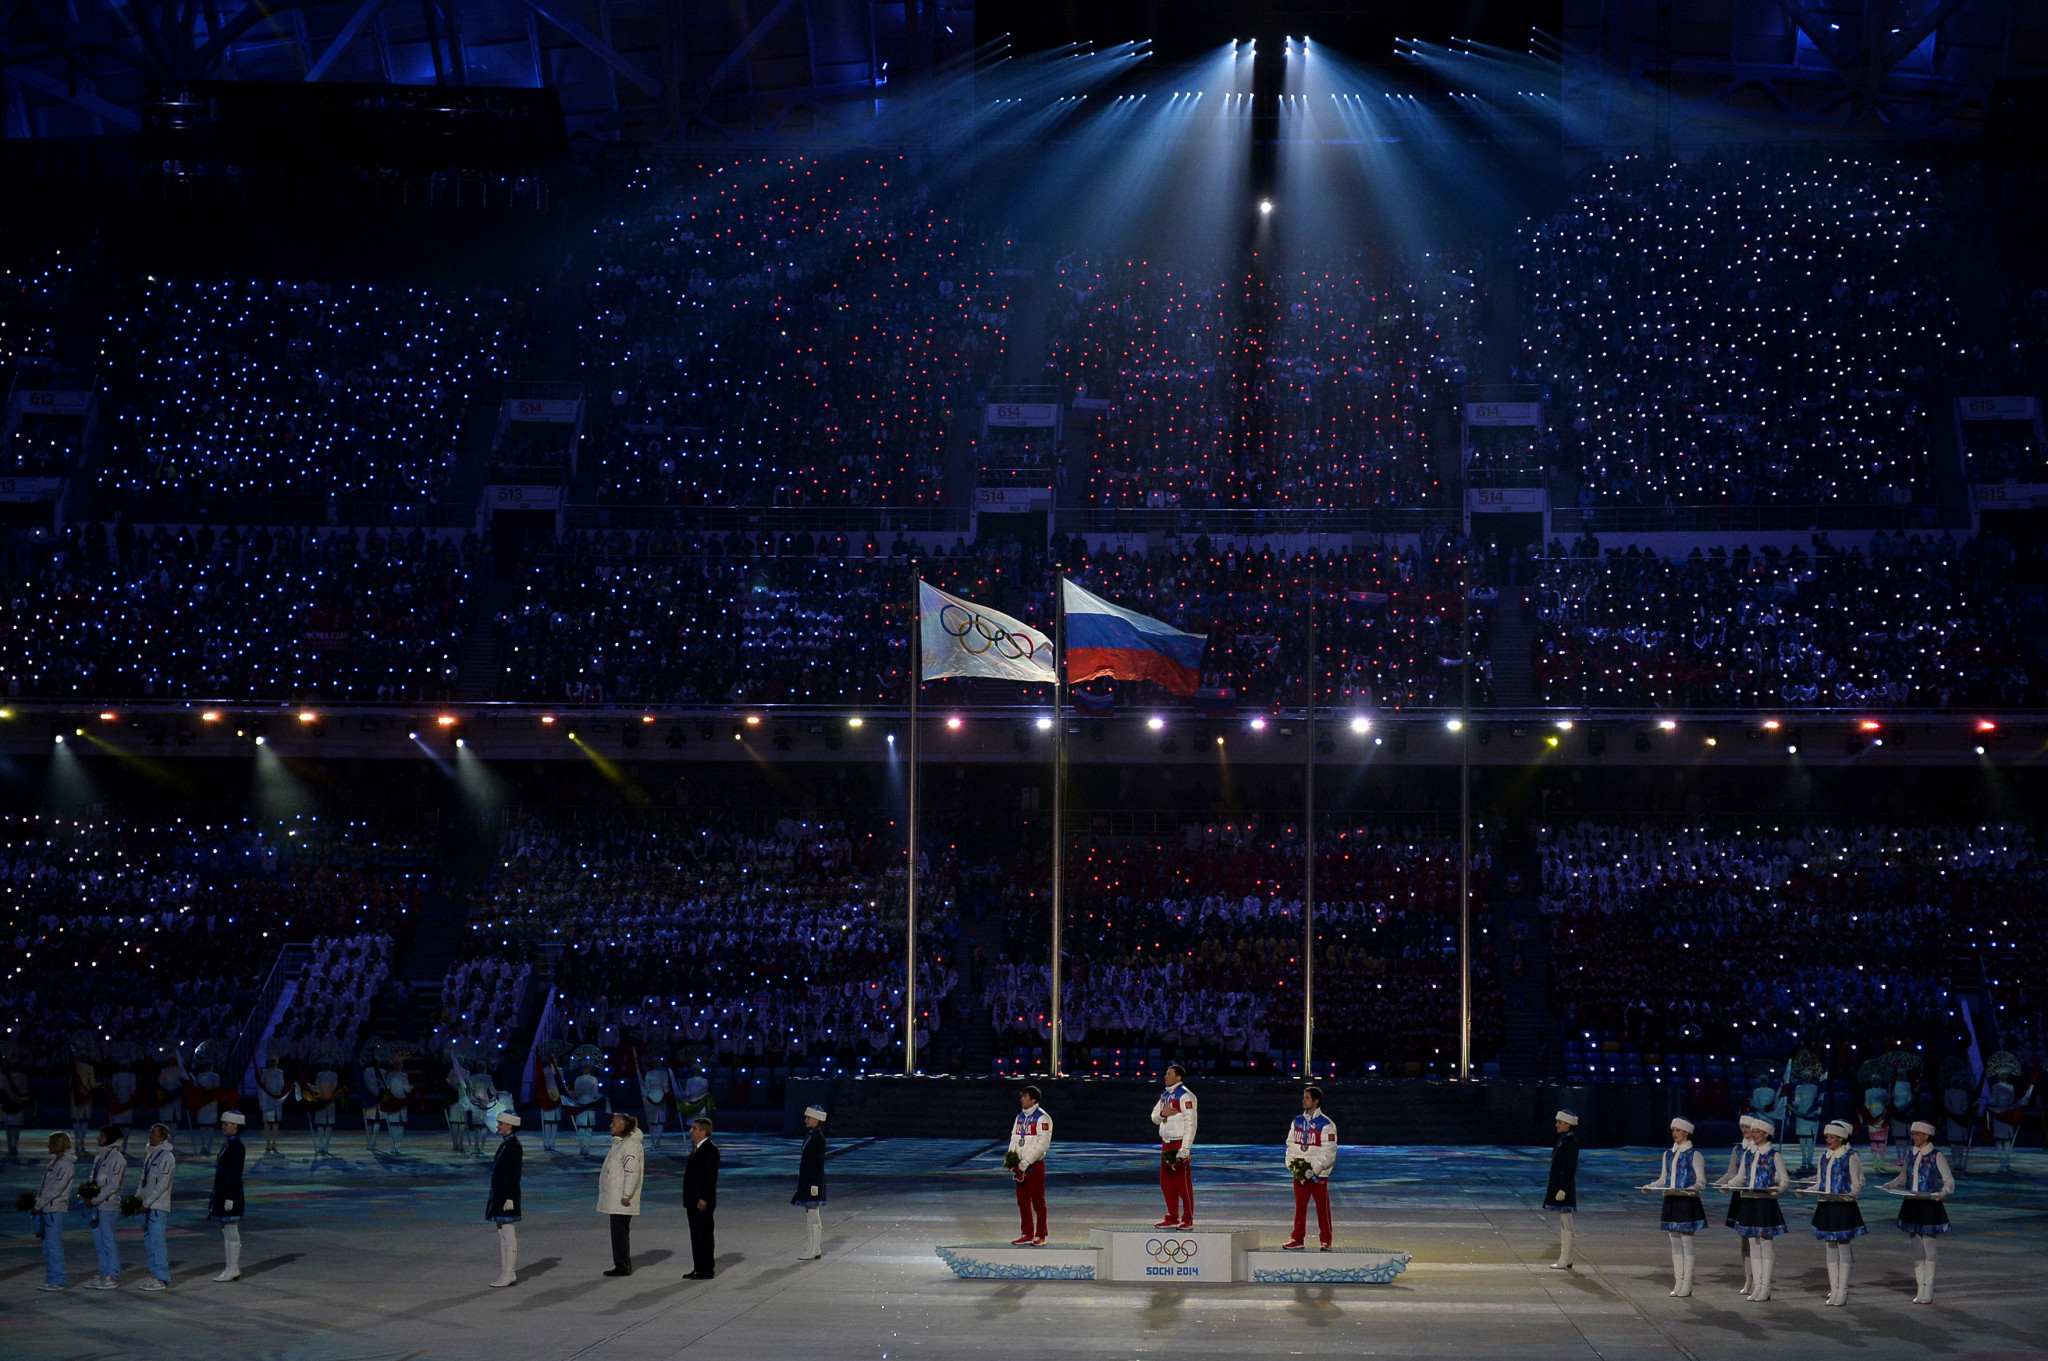 Have the IOC compromised too much by potentially allowing the Russian flag in the Closing Ceremony ©Getty Images